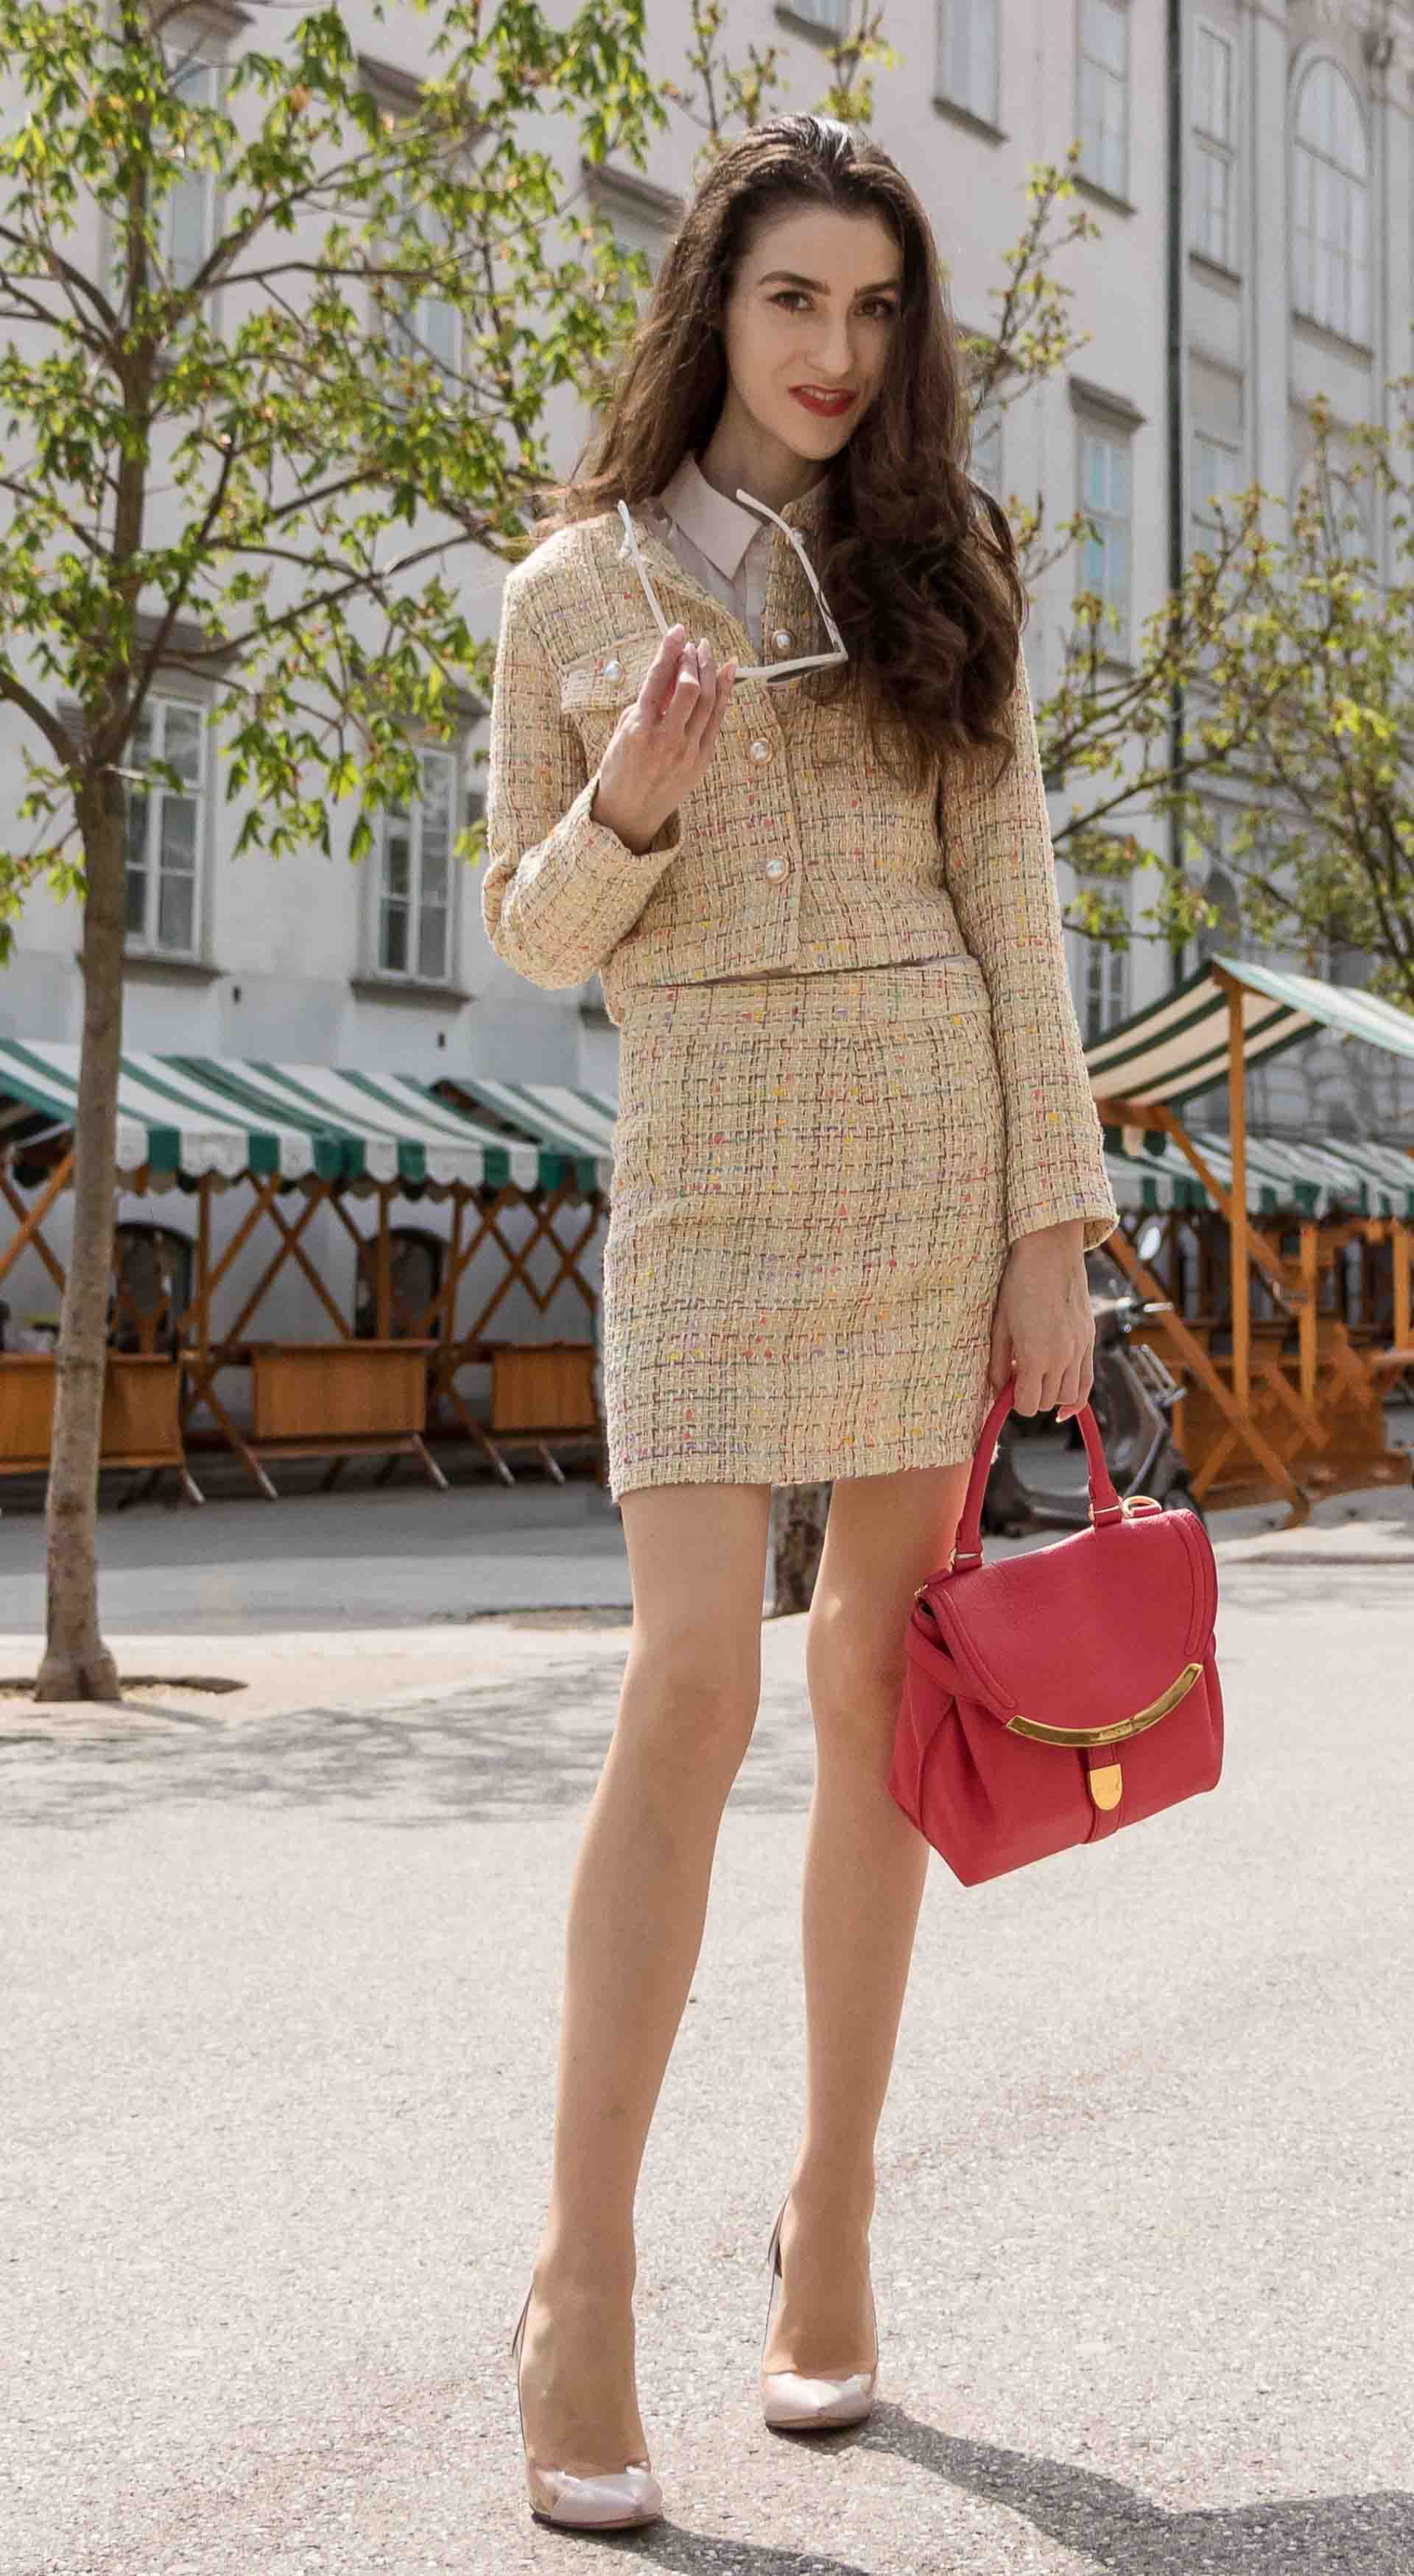 Fashion Blogger Veronika Lipar of Brunette from Wall Street dressed in Storets yellow tweed mini skirt suit, Gianvito Rossi plexi pumps, See by Chloe pink top handle bag on the street in Ljubljana